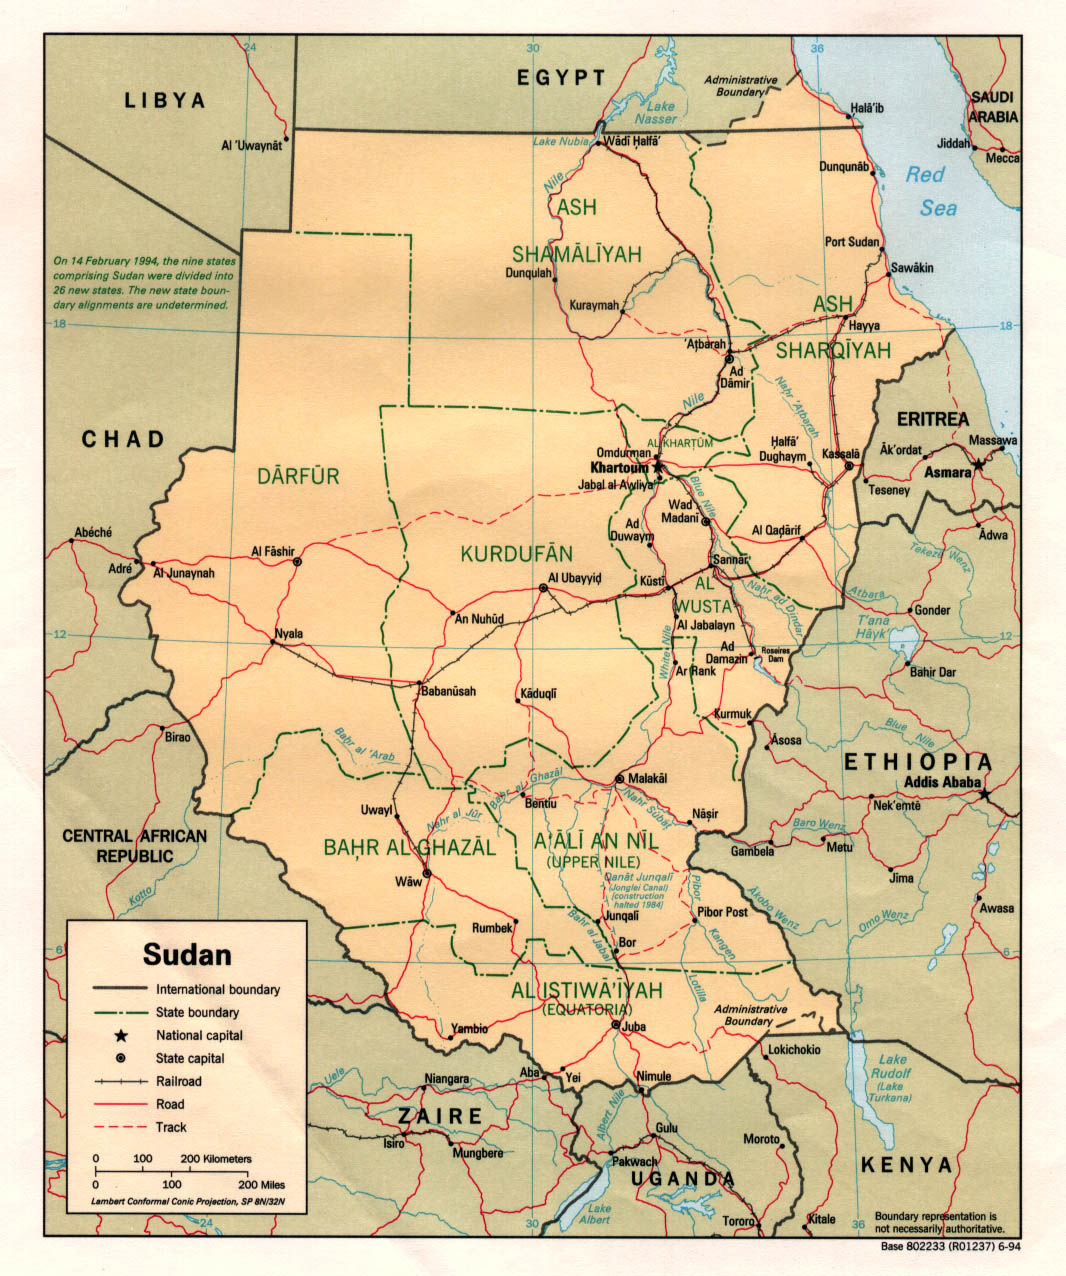 Sudan maps perry castaeda map collection ut library online sudan maps freerunsca Image collections